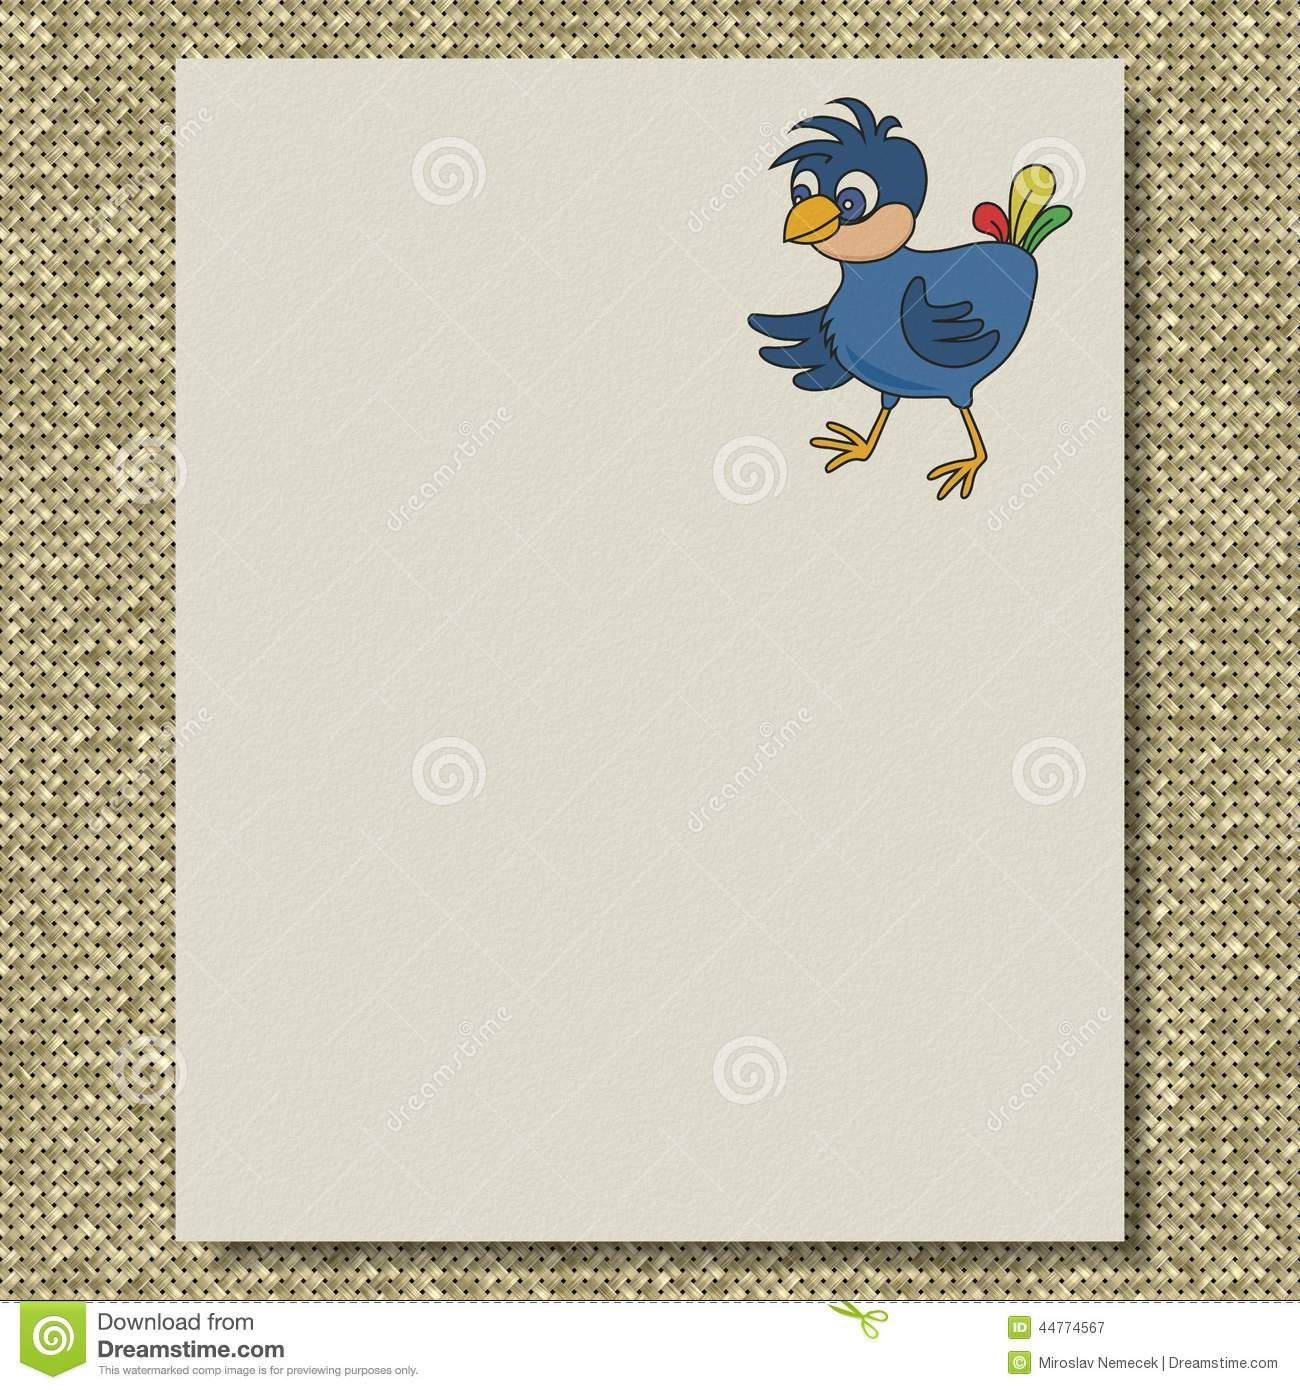 bird writing paper knit texture background stock illustration